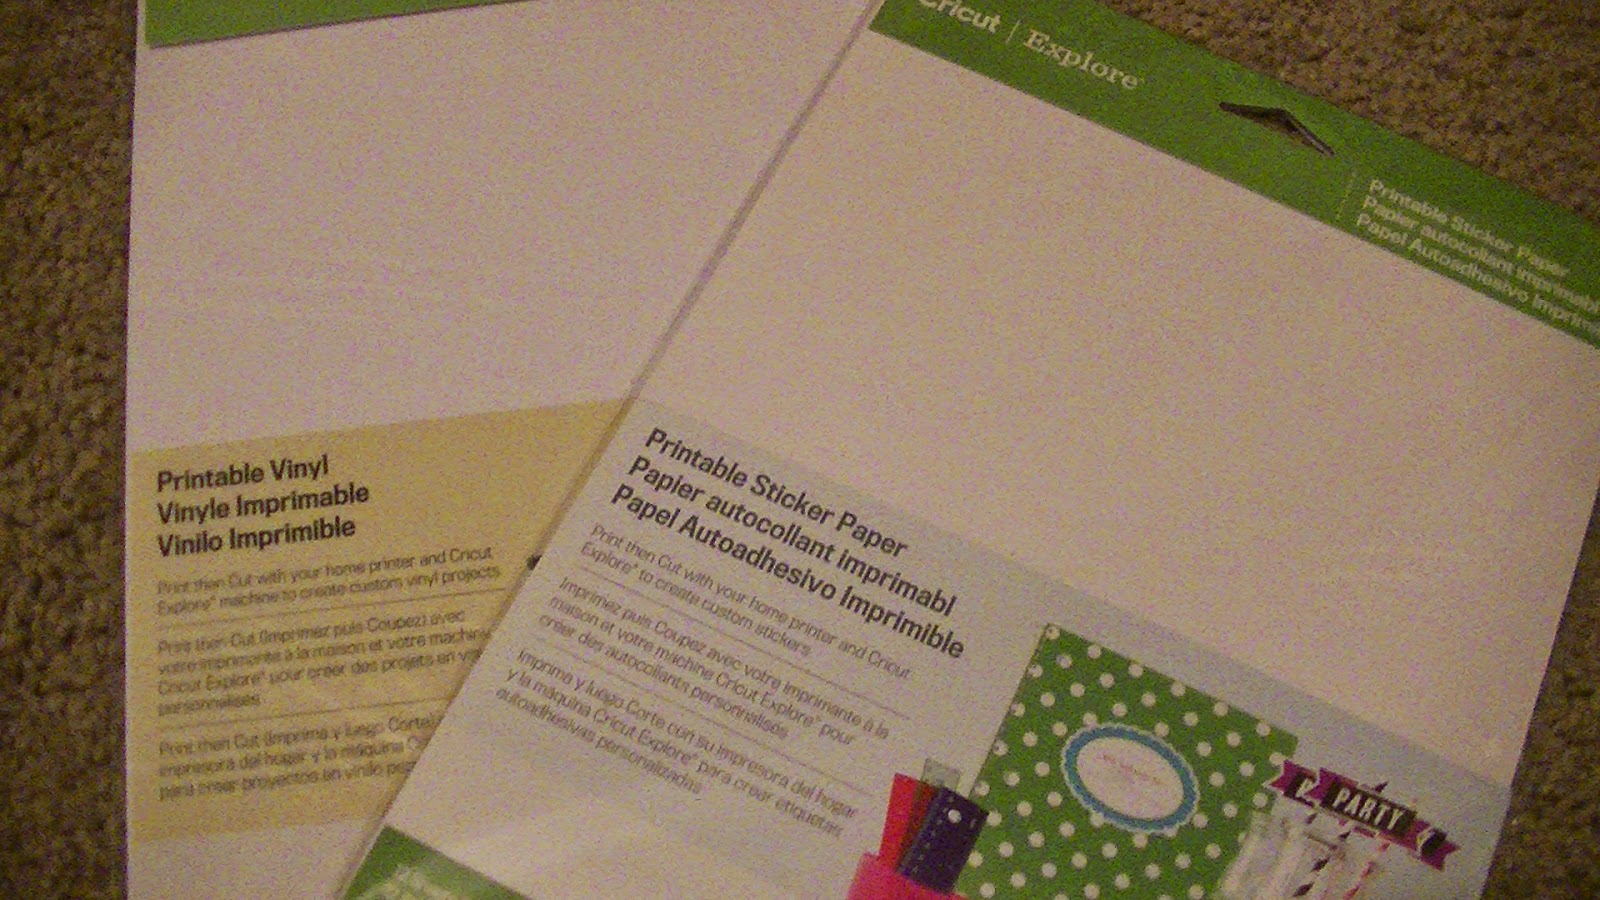 photo regarding Printable Contact Paper named Designspace44: Printable Vinyl and Sticker Paper